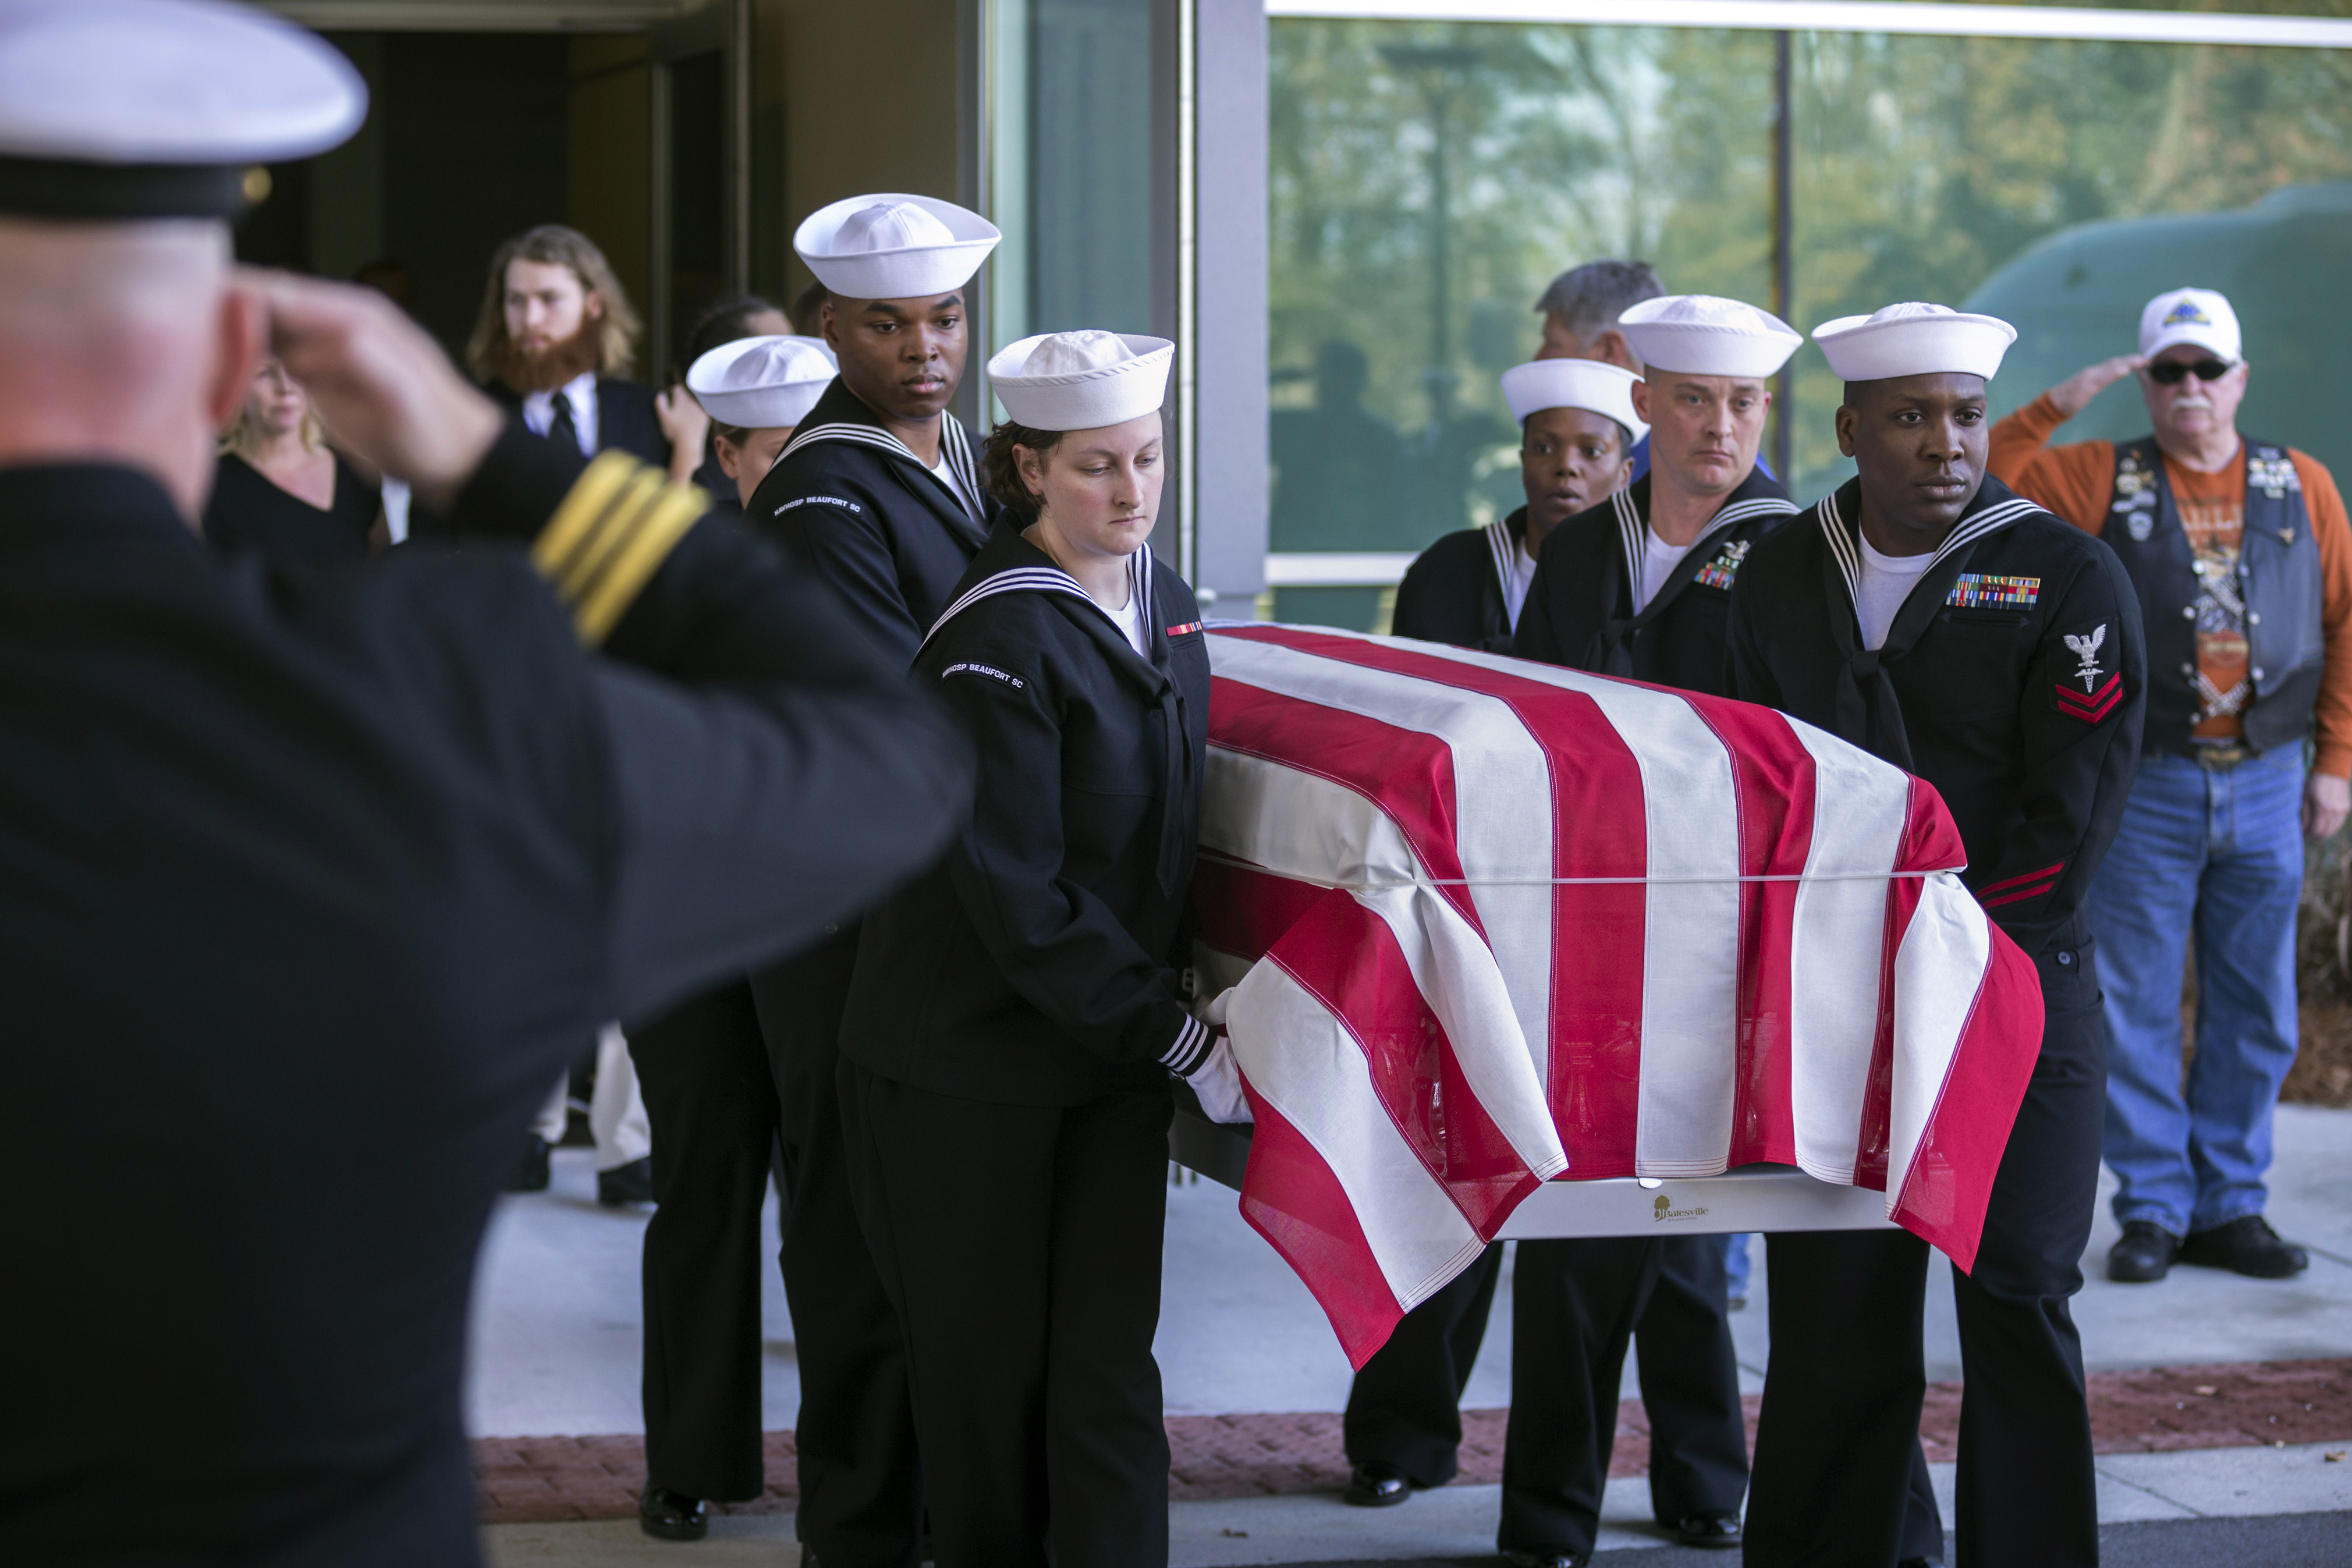 Members of a U.S. Navy honor guard carry the casket of U.S. Navy Airmen Apprentice Cameron Walters after his funeral service in Savannah, Ga., Monday, Dec. 16, 2019. Walters was one of three Navy sailors killed in a Saudi gunman's attack at Naval Air Station Pensacola in Florida on Dec. 6.